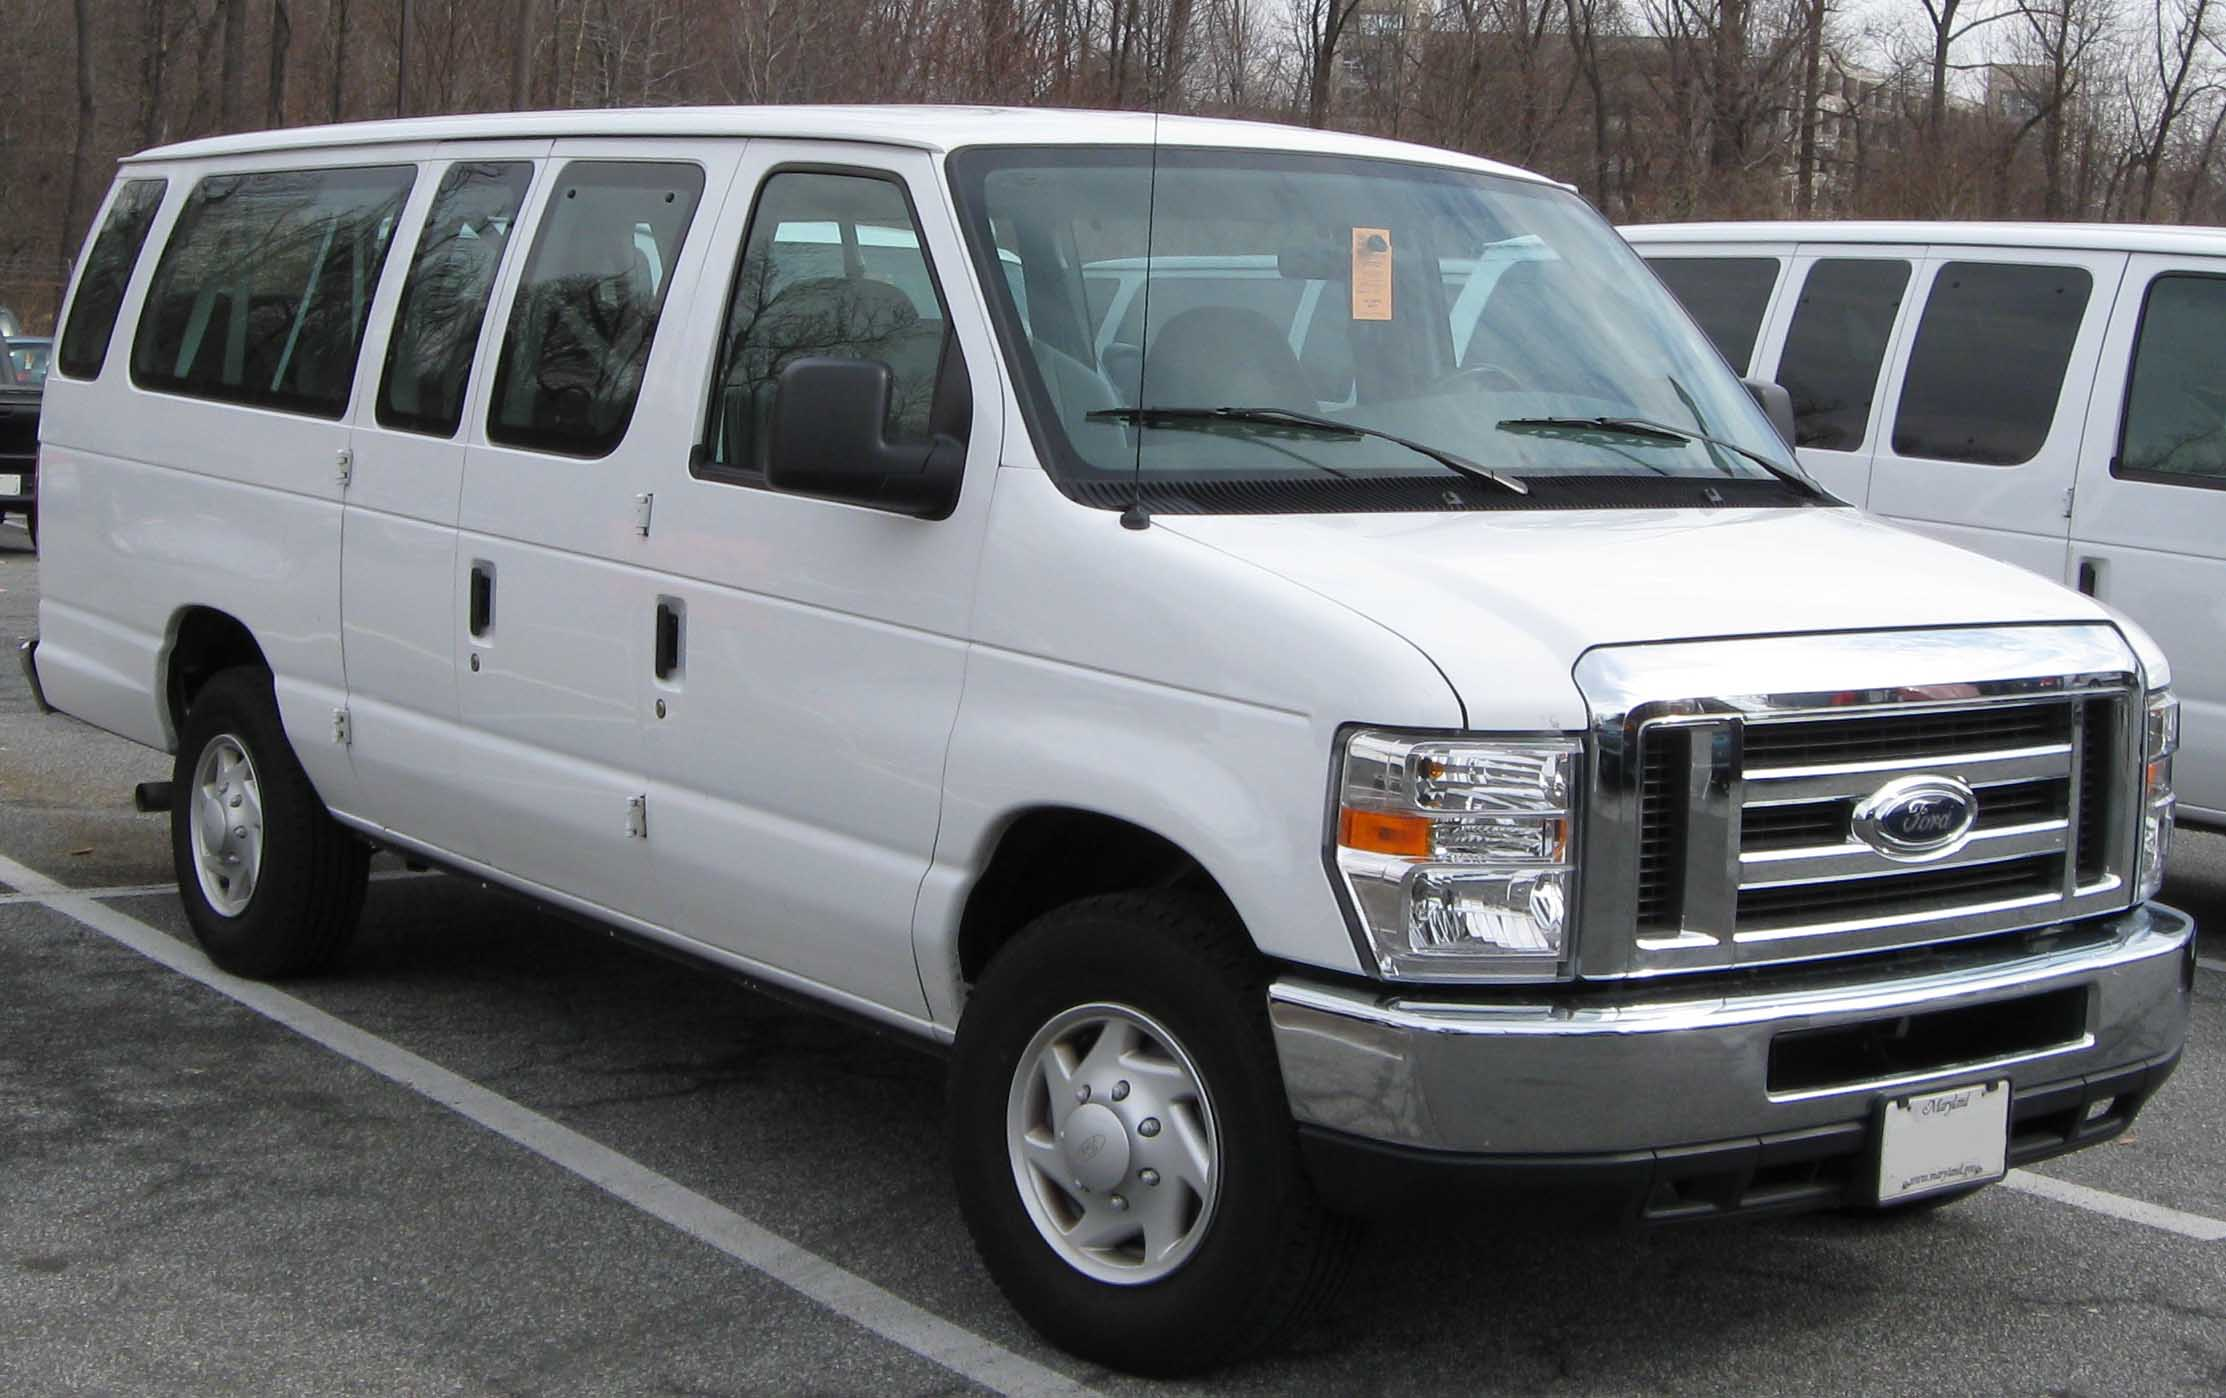 Ford E-series Van #7